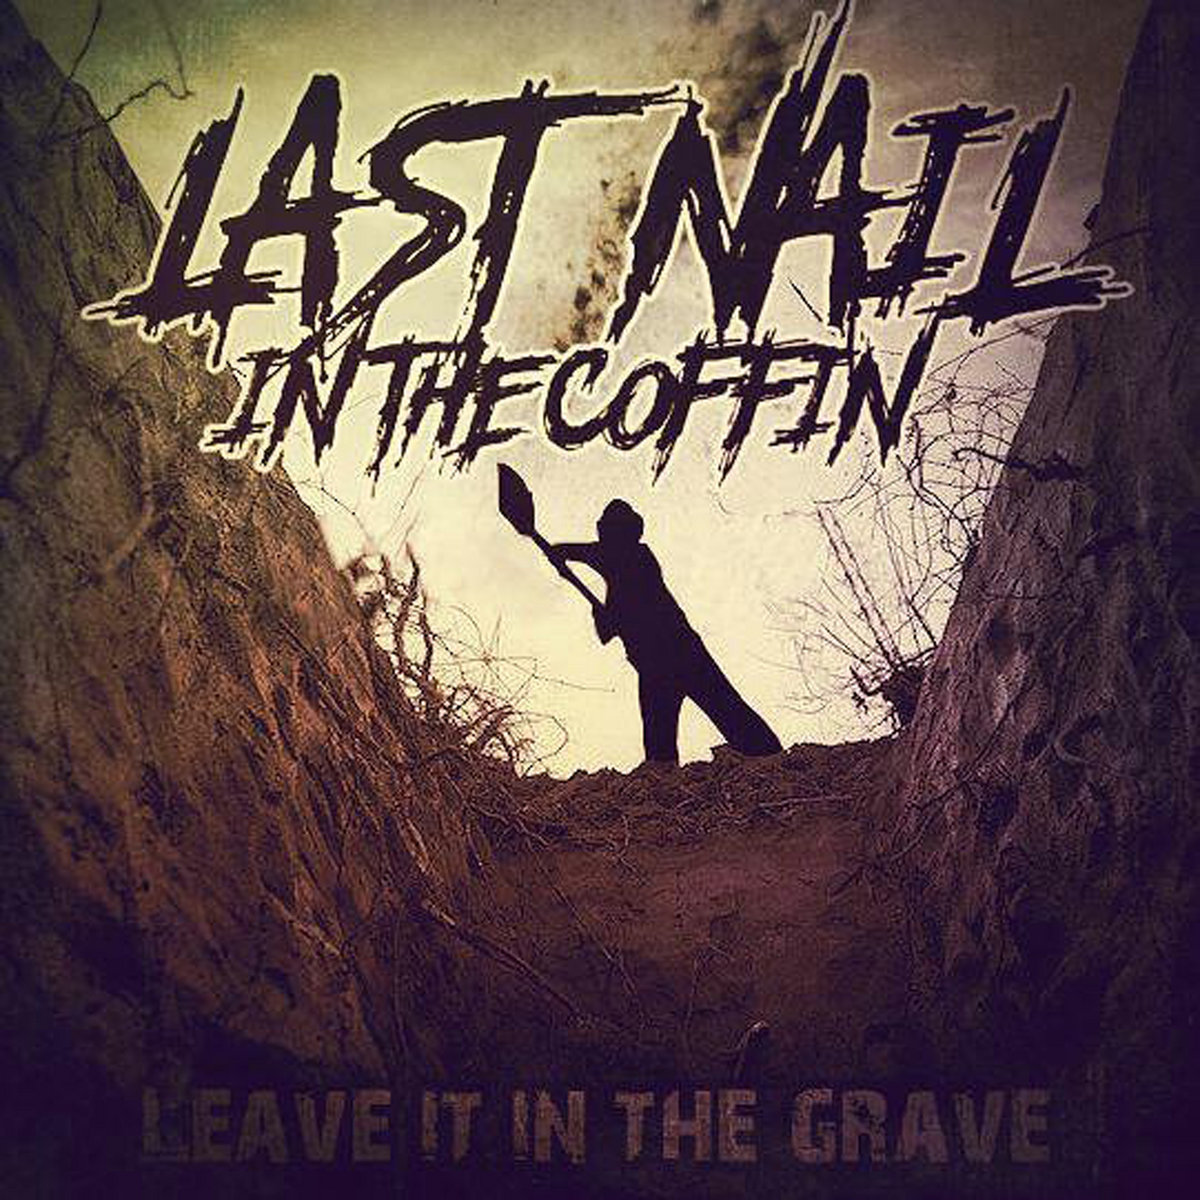 Leave It In The Grave | Last Nail In The Coffin